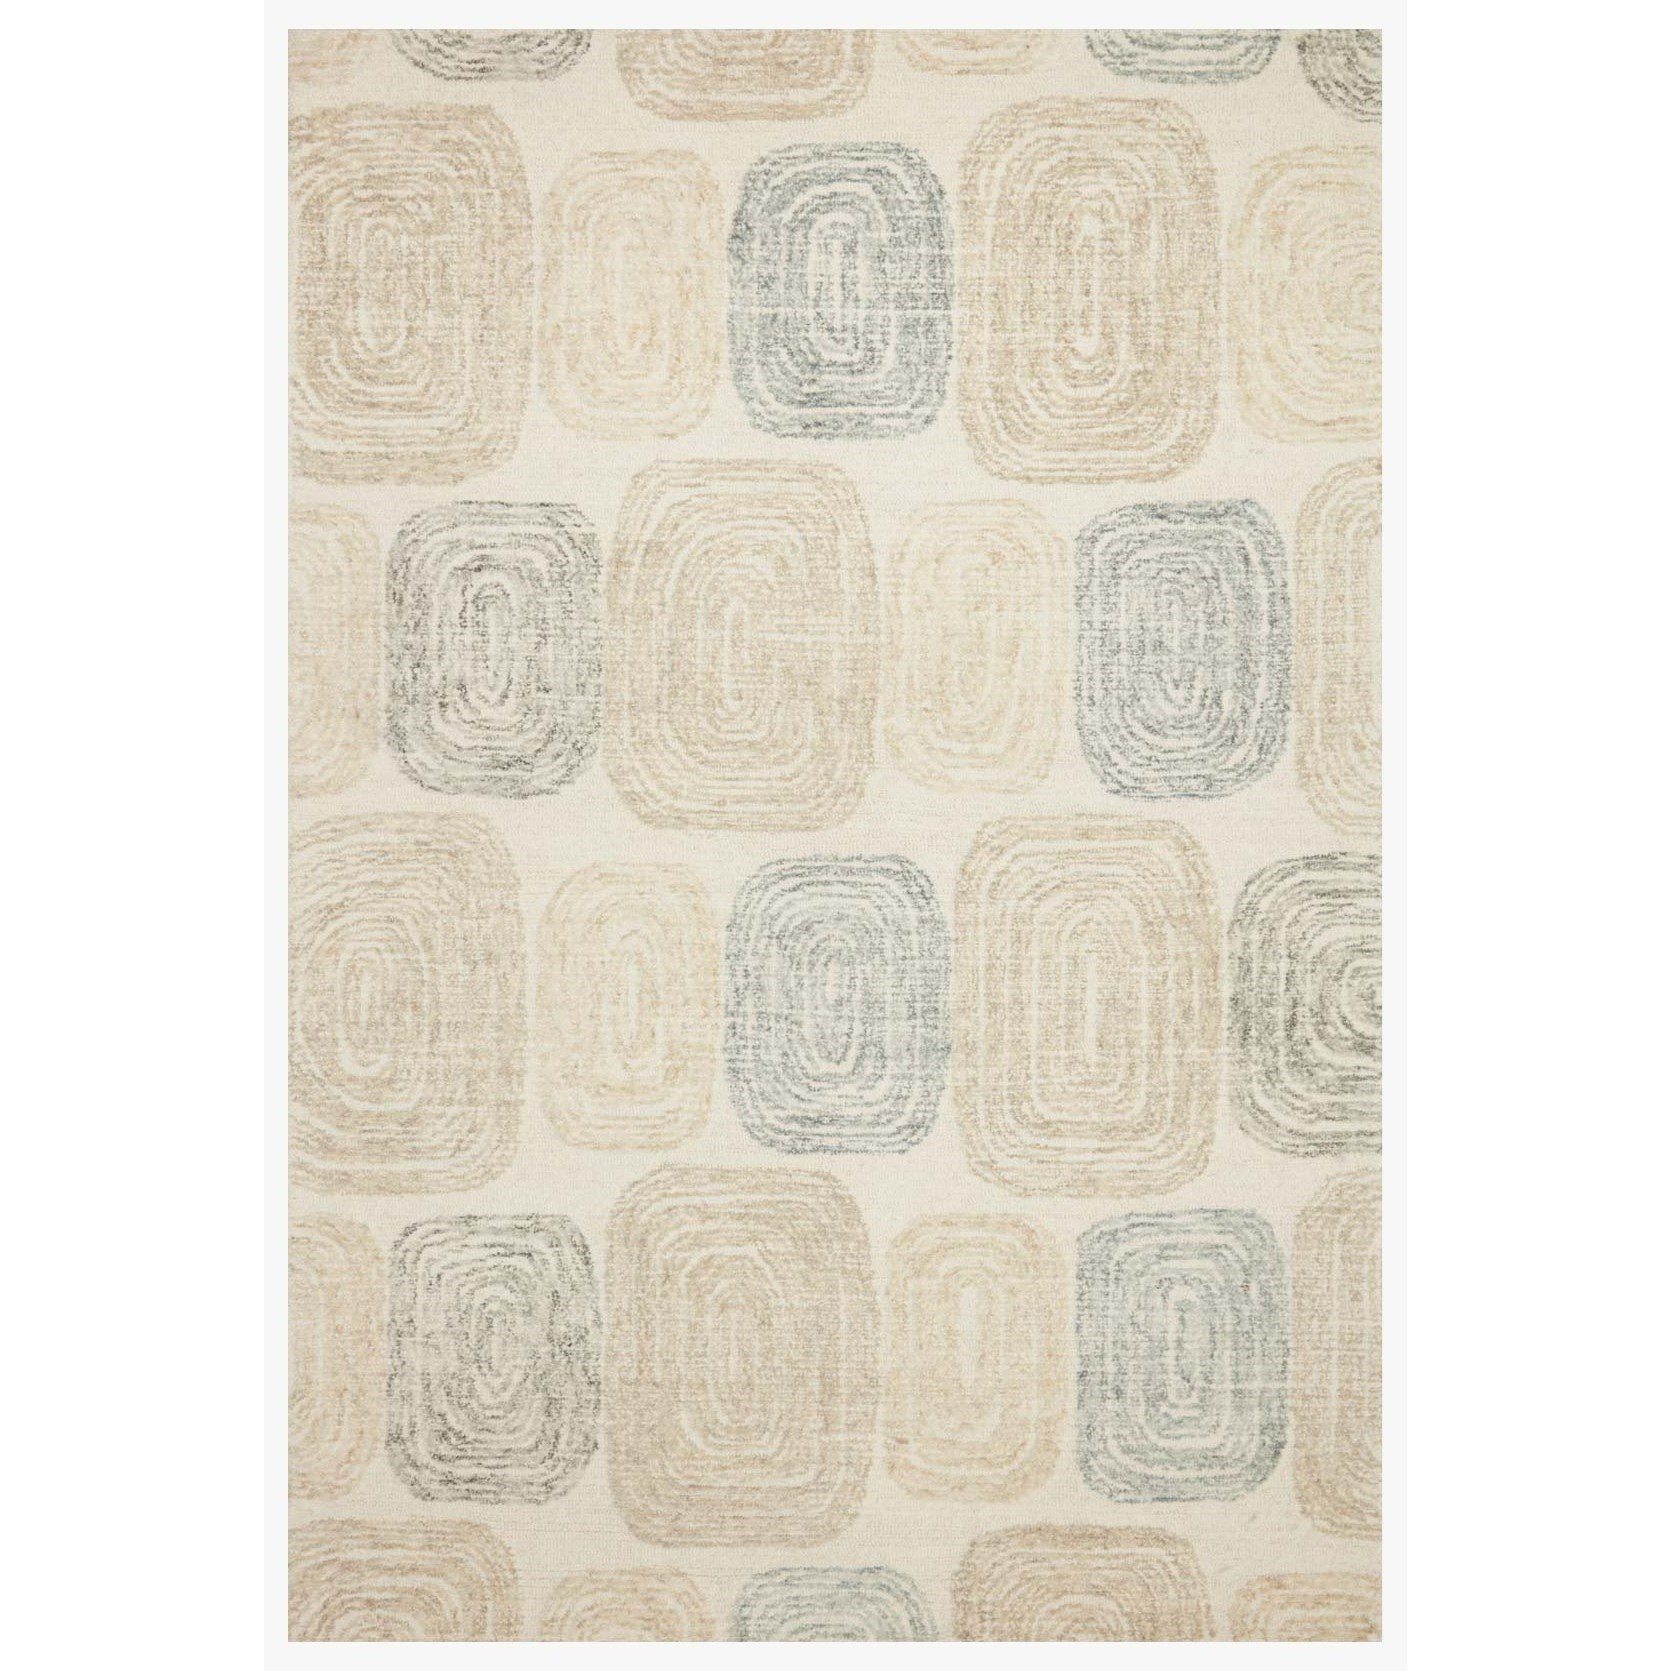 """Milo 7'9"""" x 9'9"""" Teal / Neutral Rug by Loloi Rugs at Virginia Furniture Market"""